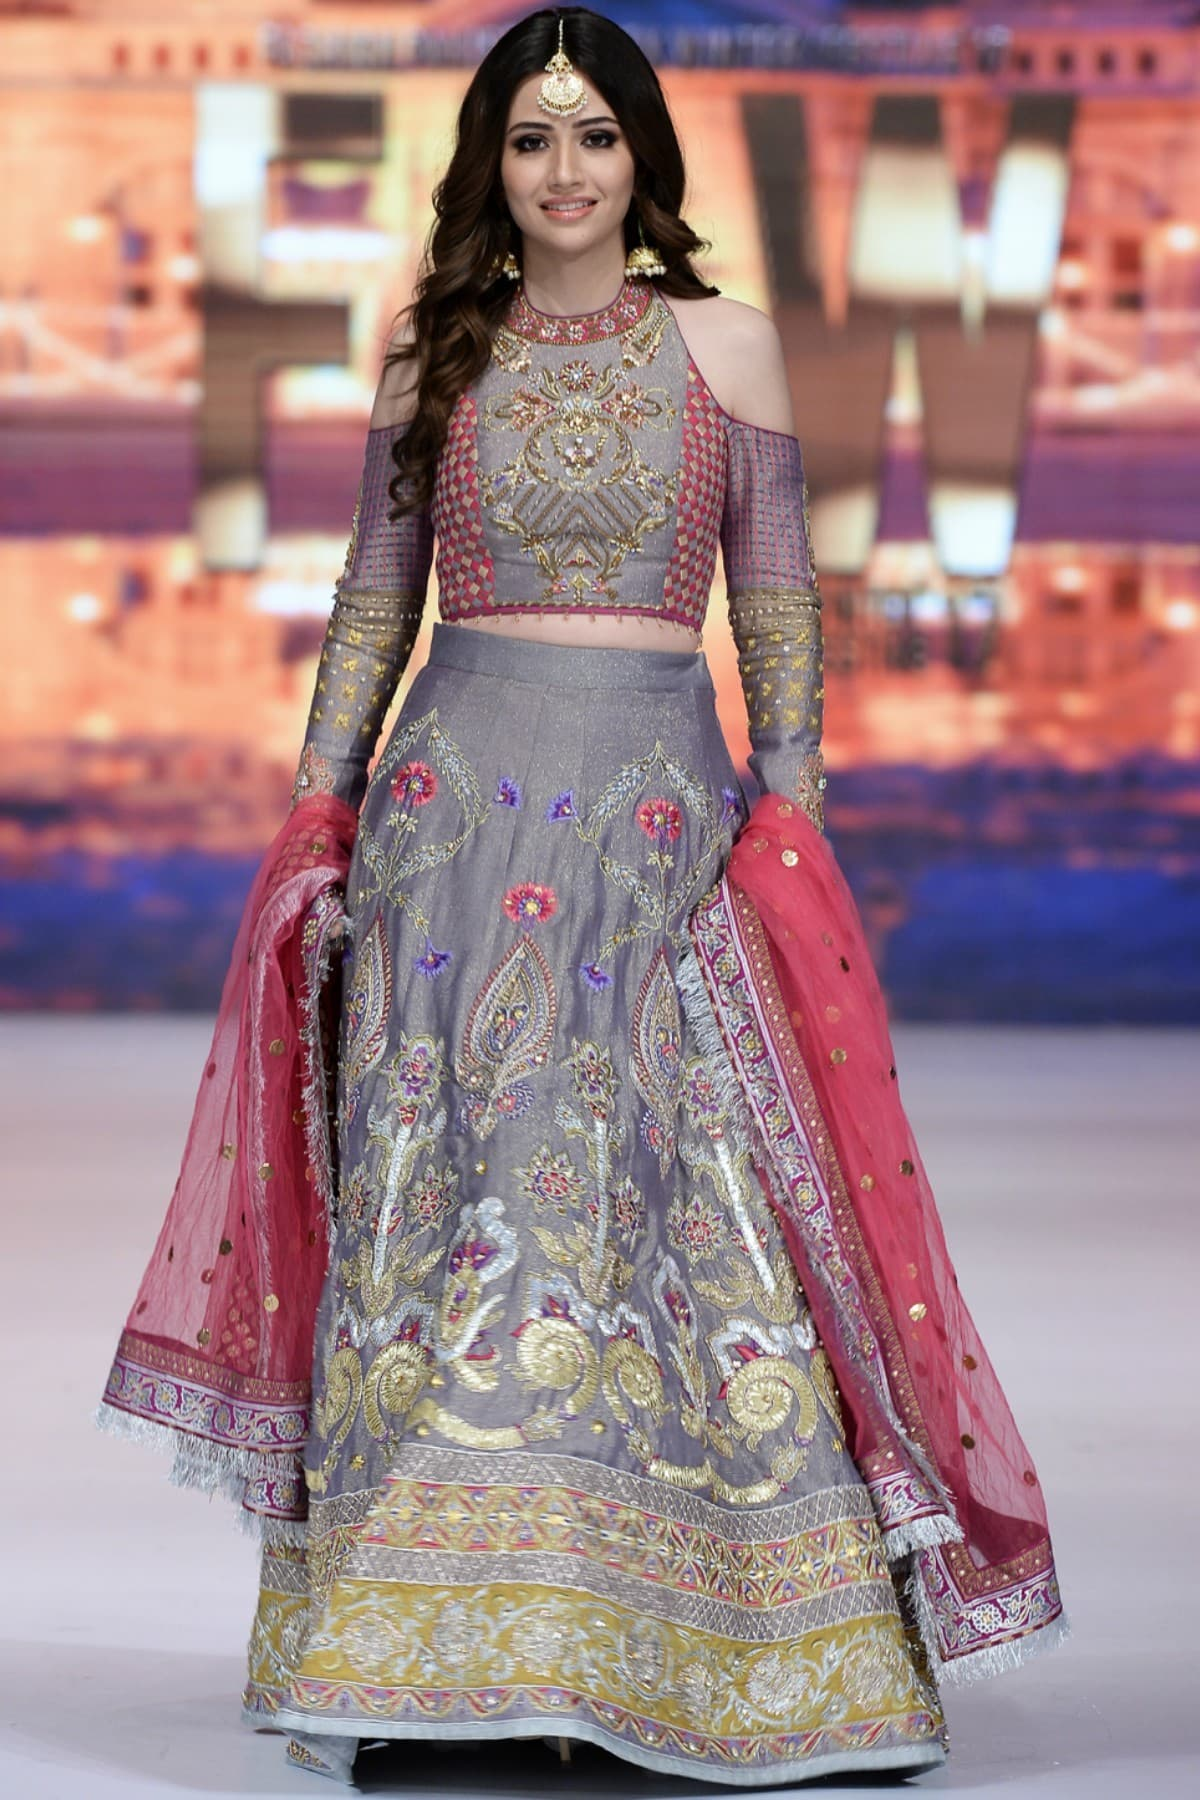 Sana Javed walked as Wardha's celebrity showstopper